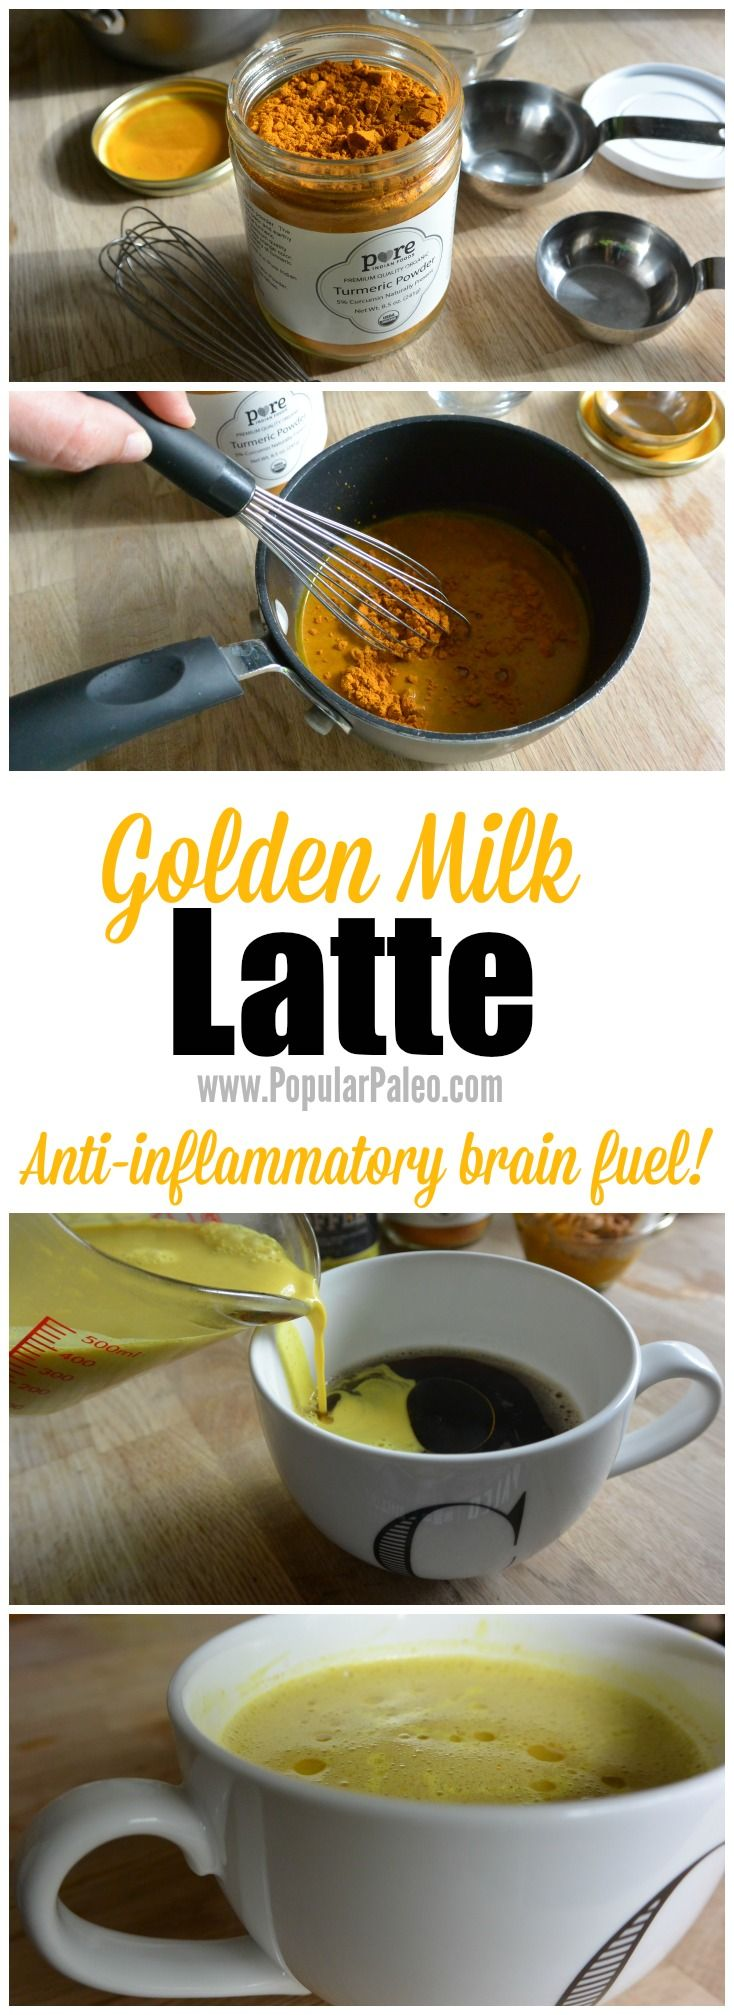 Golden Milk Latte on www.PopularPaleo.com | Turn the traditional anti-inflammatory, antioxidant drink into brain fuel to start your day! #paleo #buttercoffee #goldenmilk  | Turmeric benefits - Herbology and Herbalism